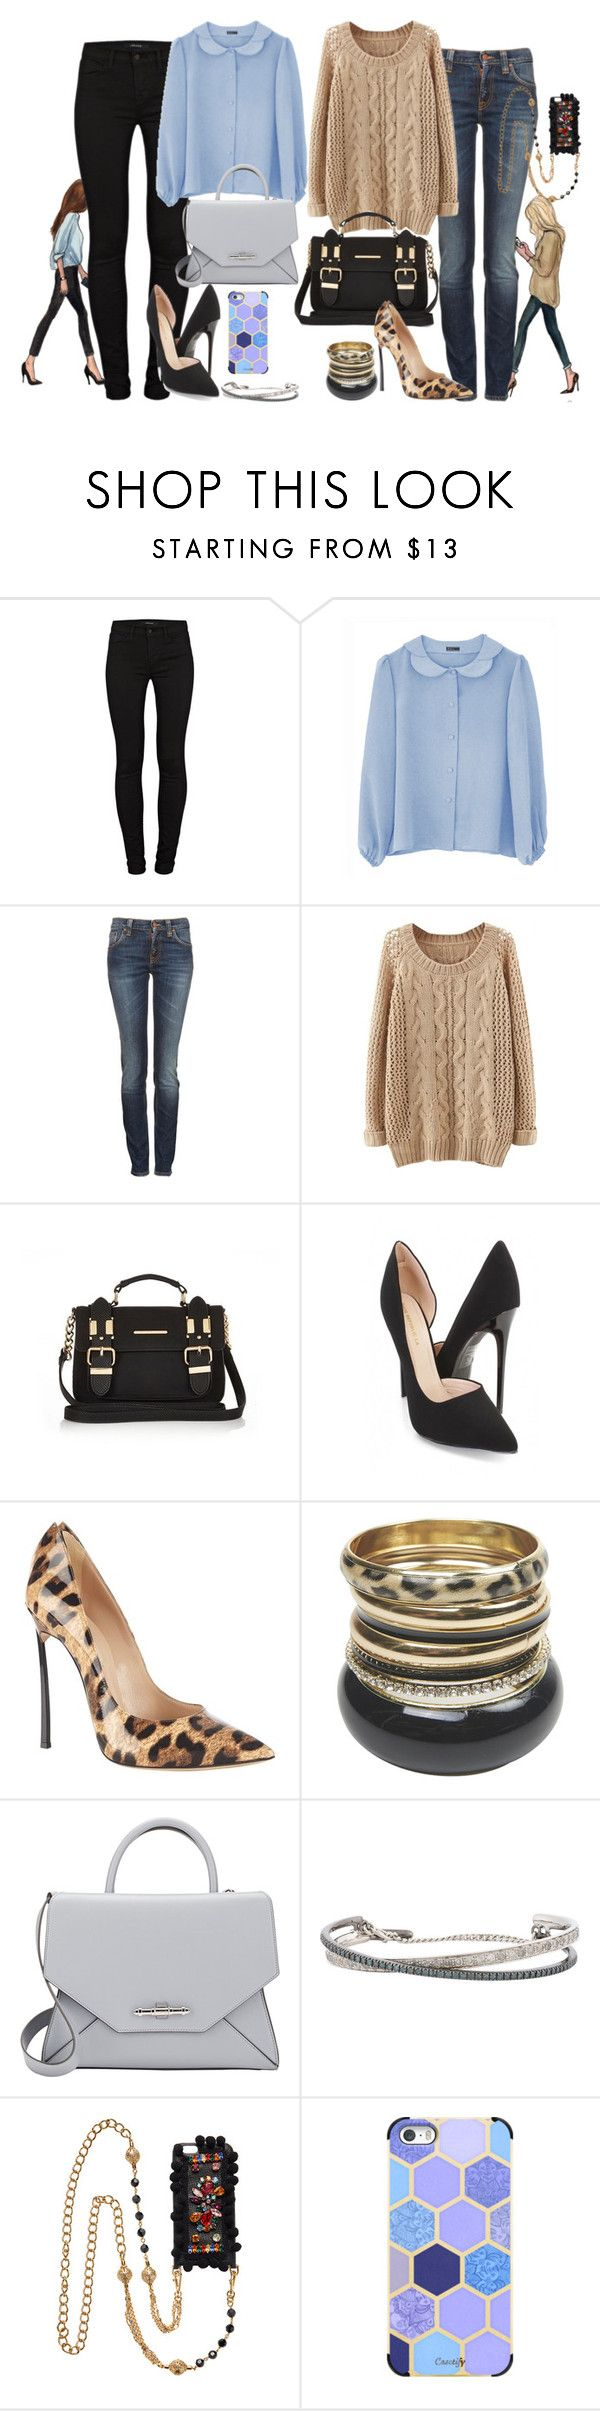 """Untitled #2618"" by fashion-nova ❤ liked on Polyvore featuring moda, J Brand, Nudie Jeans Co., River Island, Casadei, Wet Seal, Givenchy, Roberto Marroni, Dolce&Gabbana y Casetify"